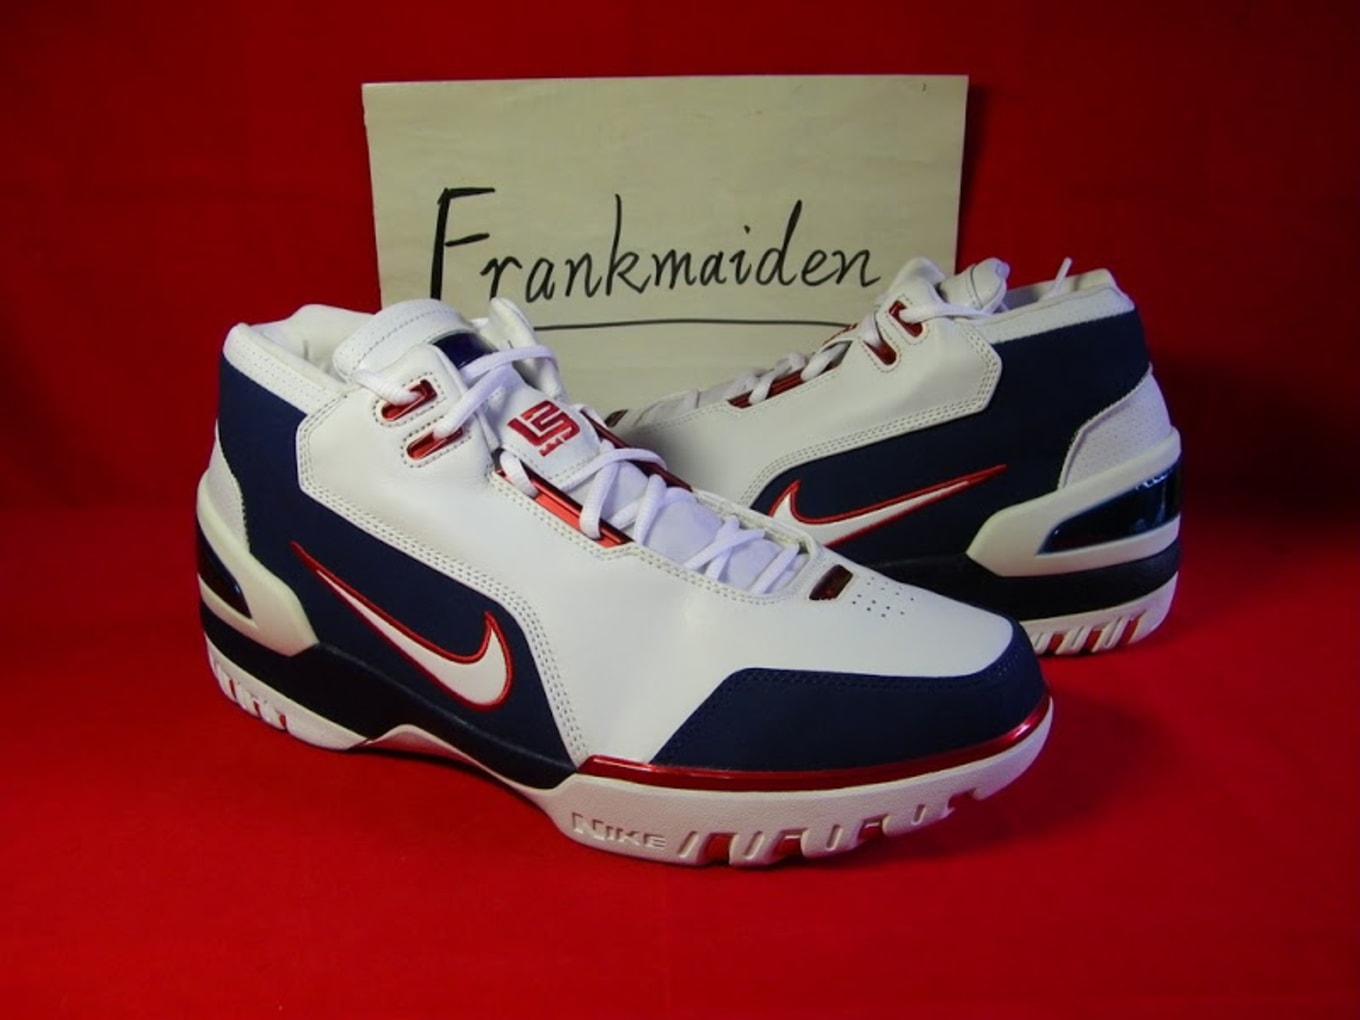 ed352304 Nike LeBron Samples That Never Released | Sole Collector